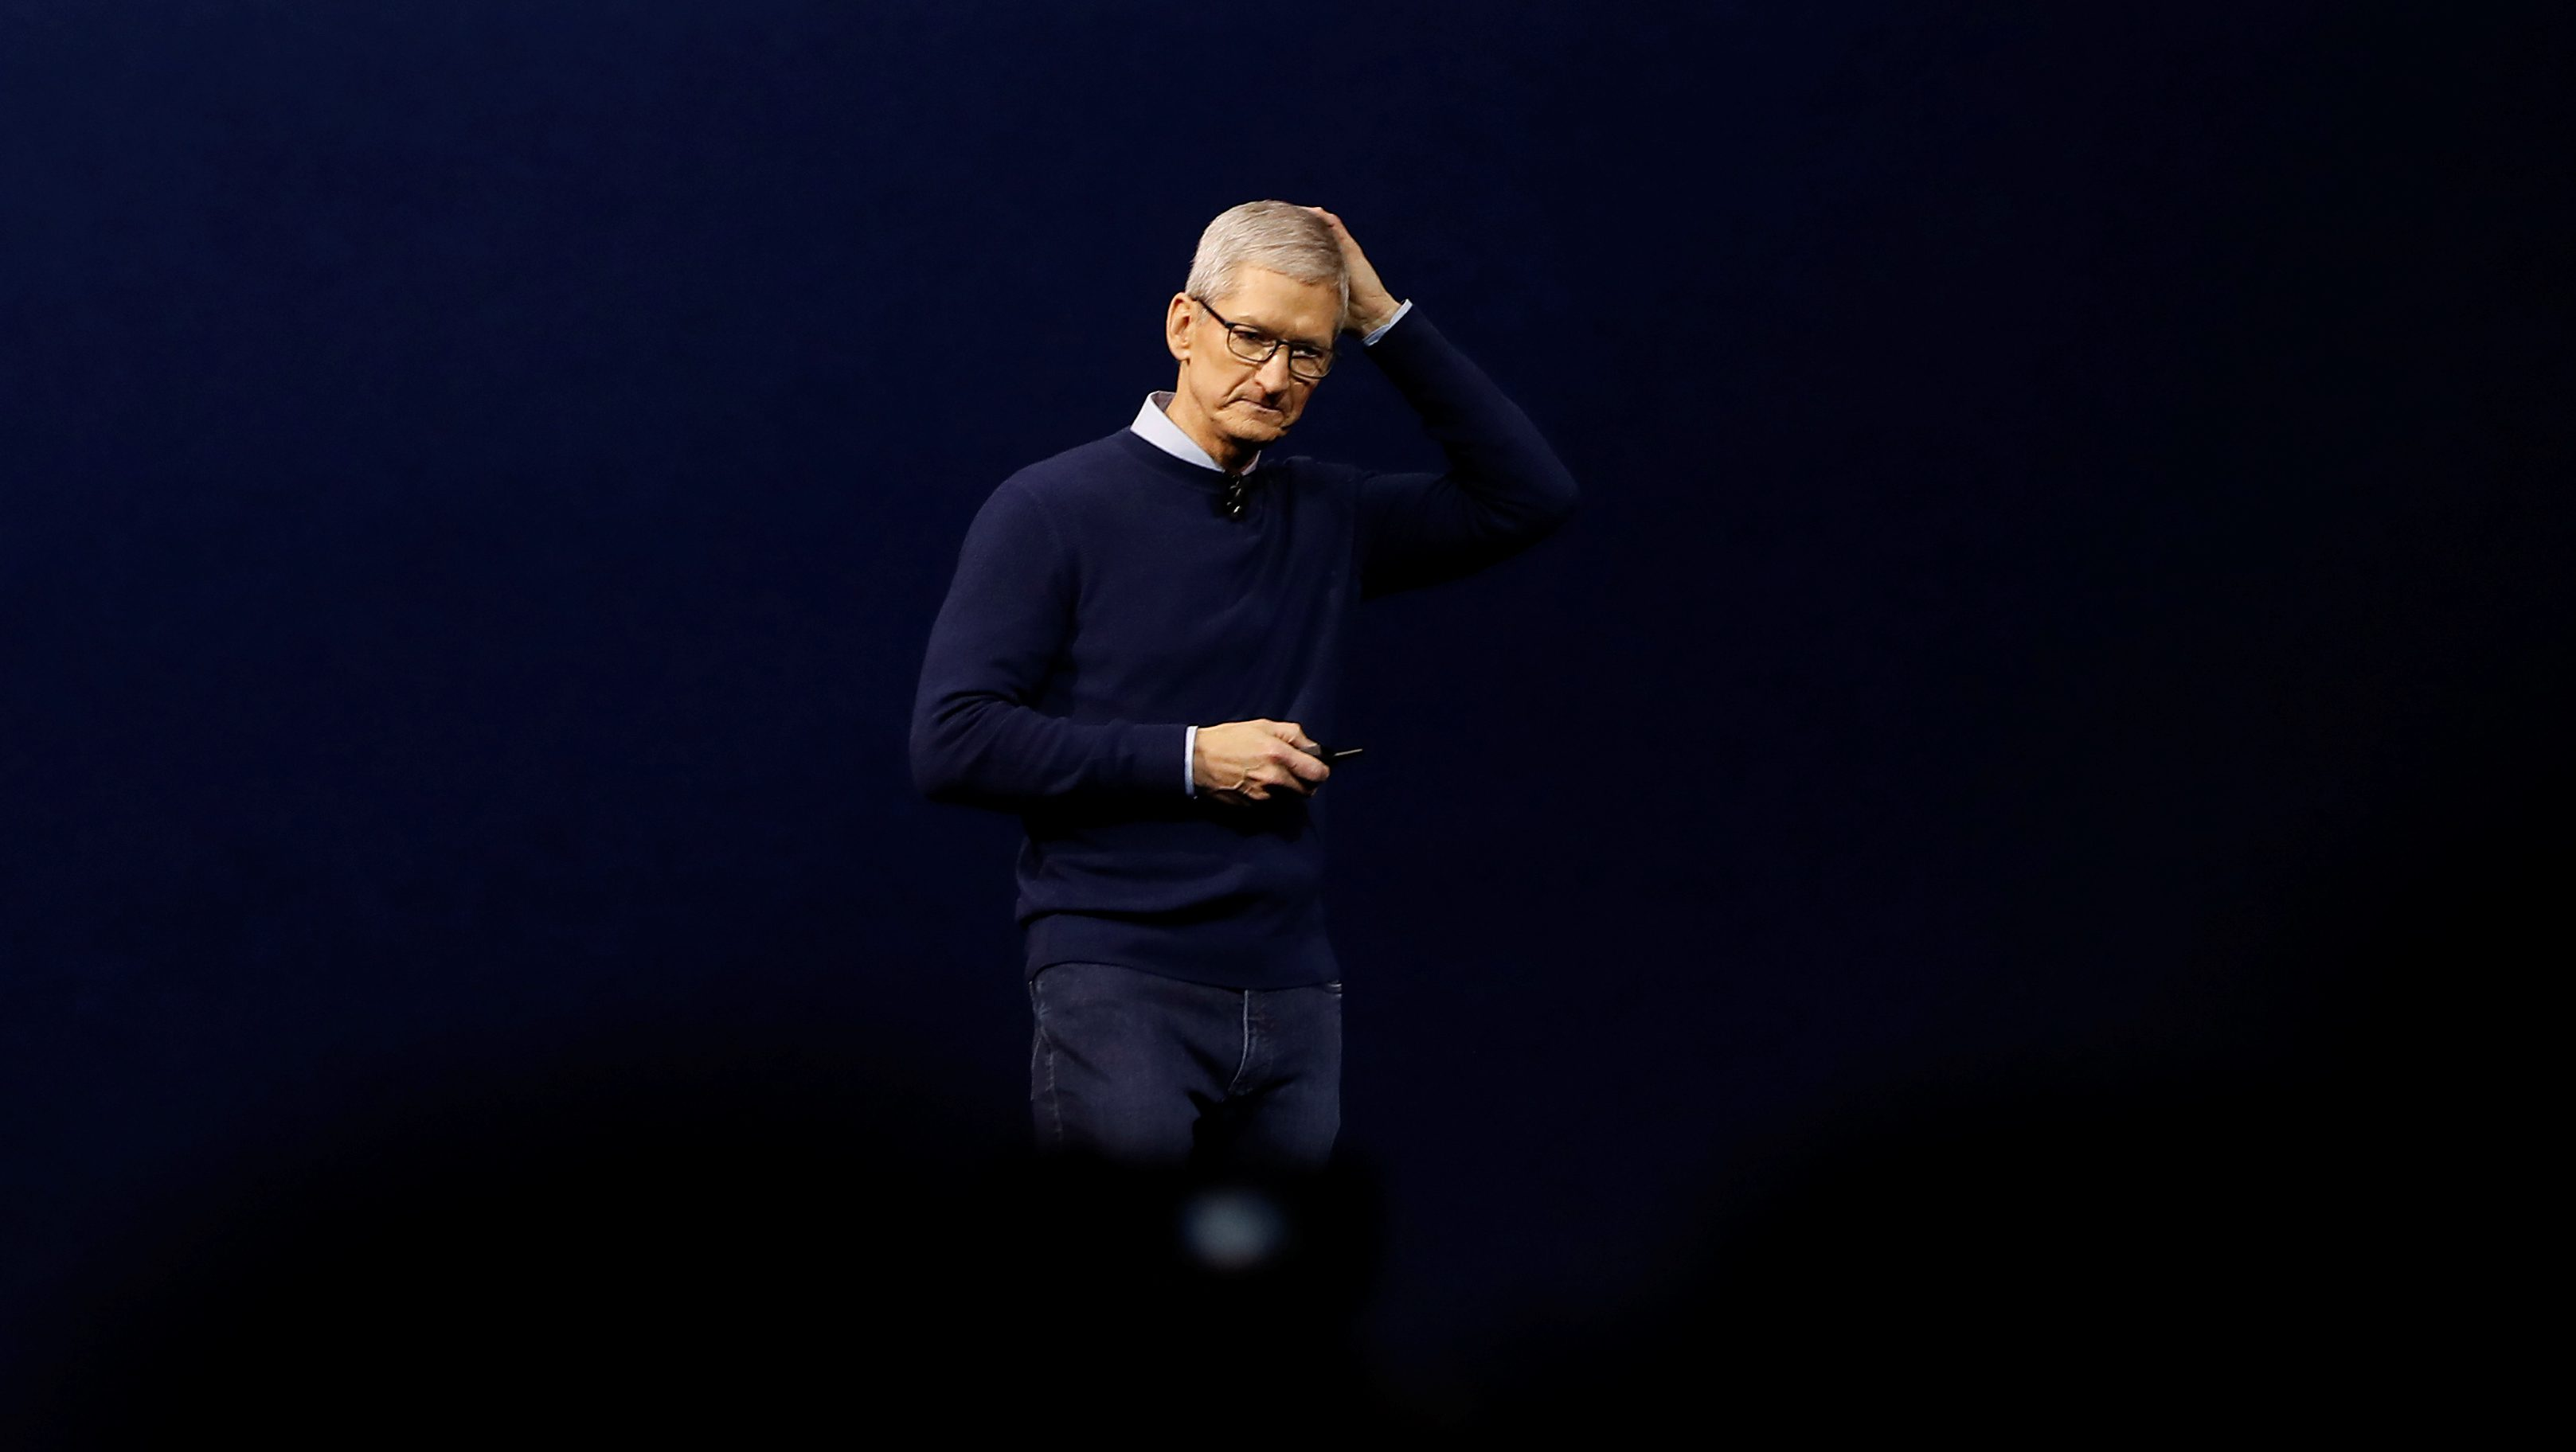 Apple CEO Tim Cook speaks on stage during Apple's annual Worldwide Developer Conference (WWDC) in San Jose, California, U.S. June 5, 2017.